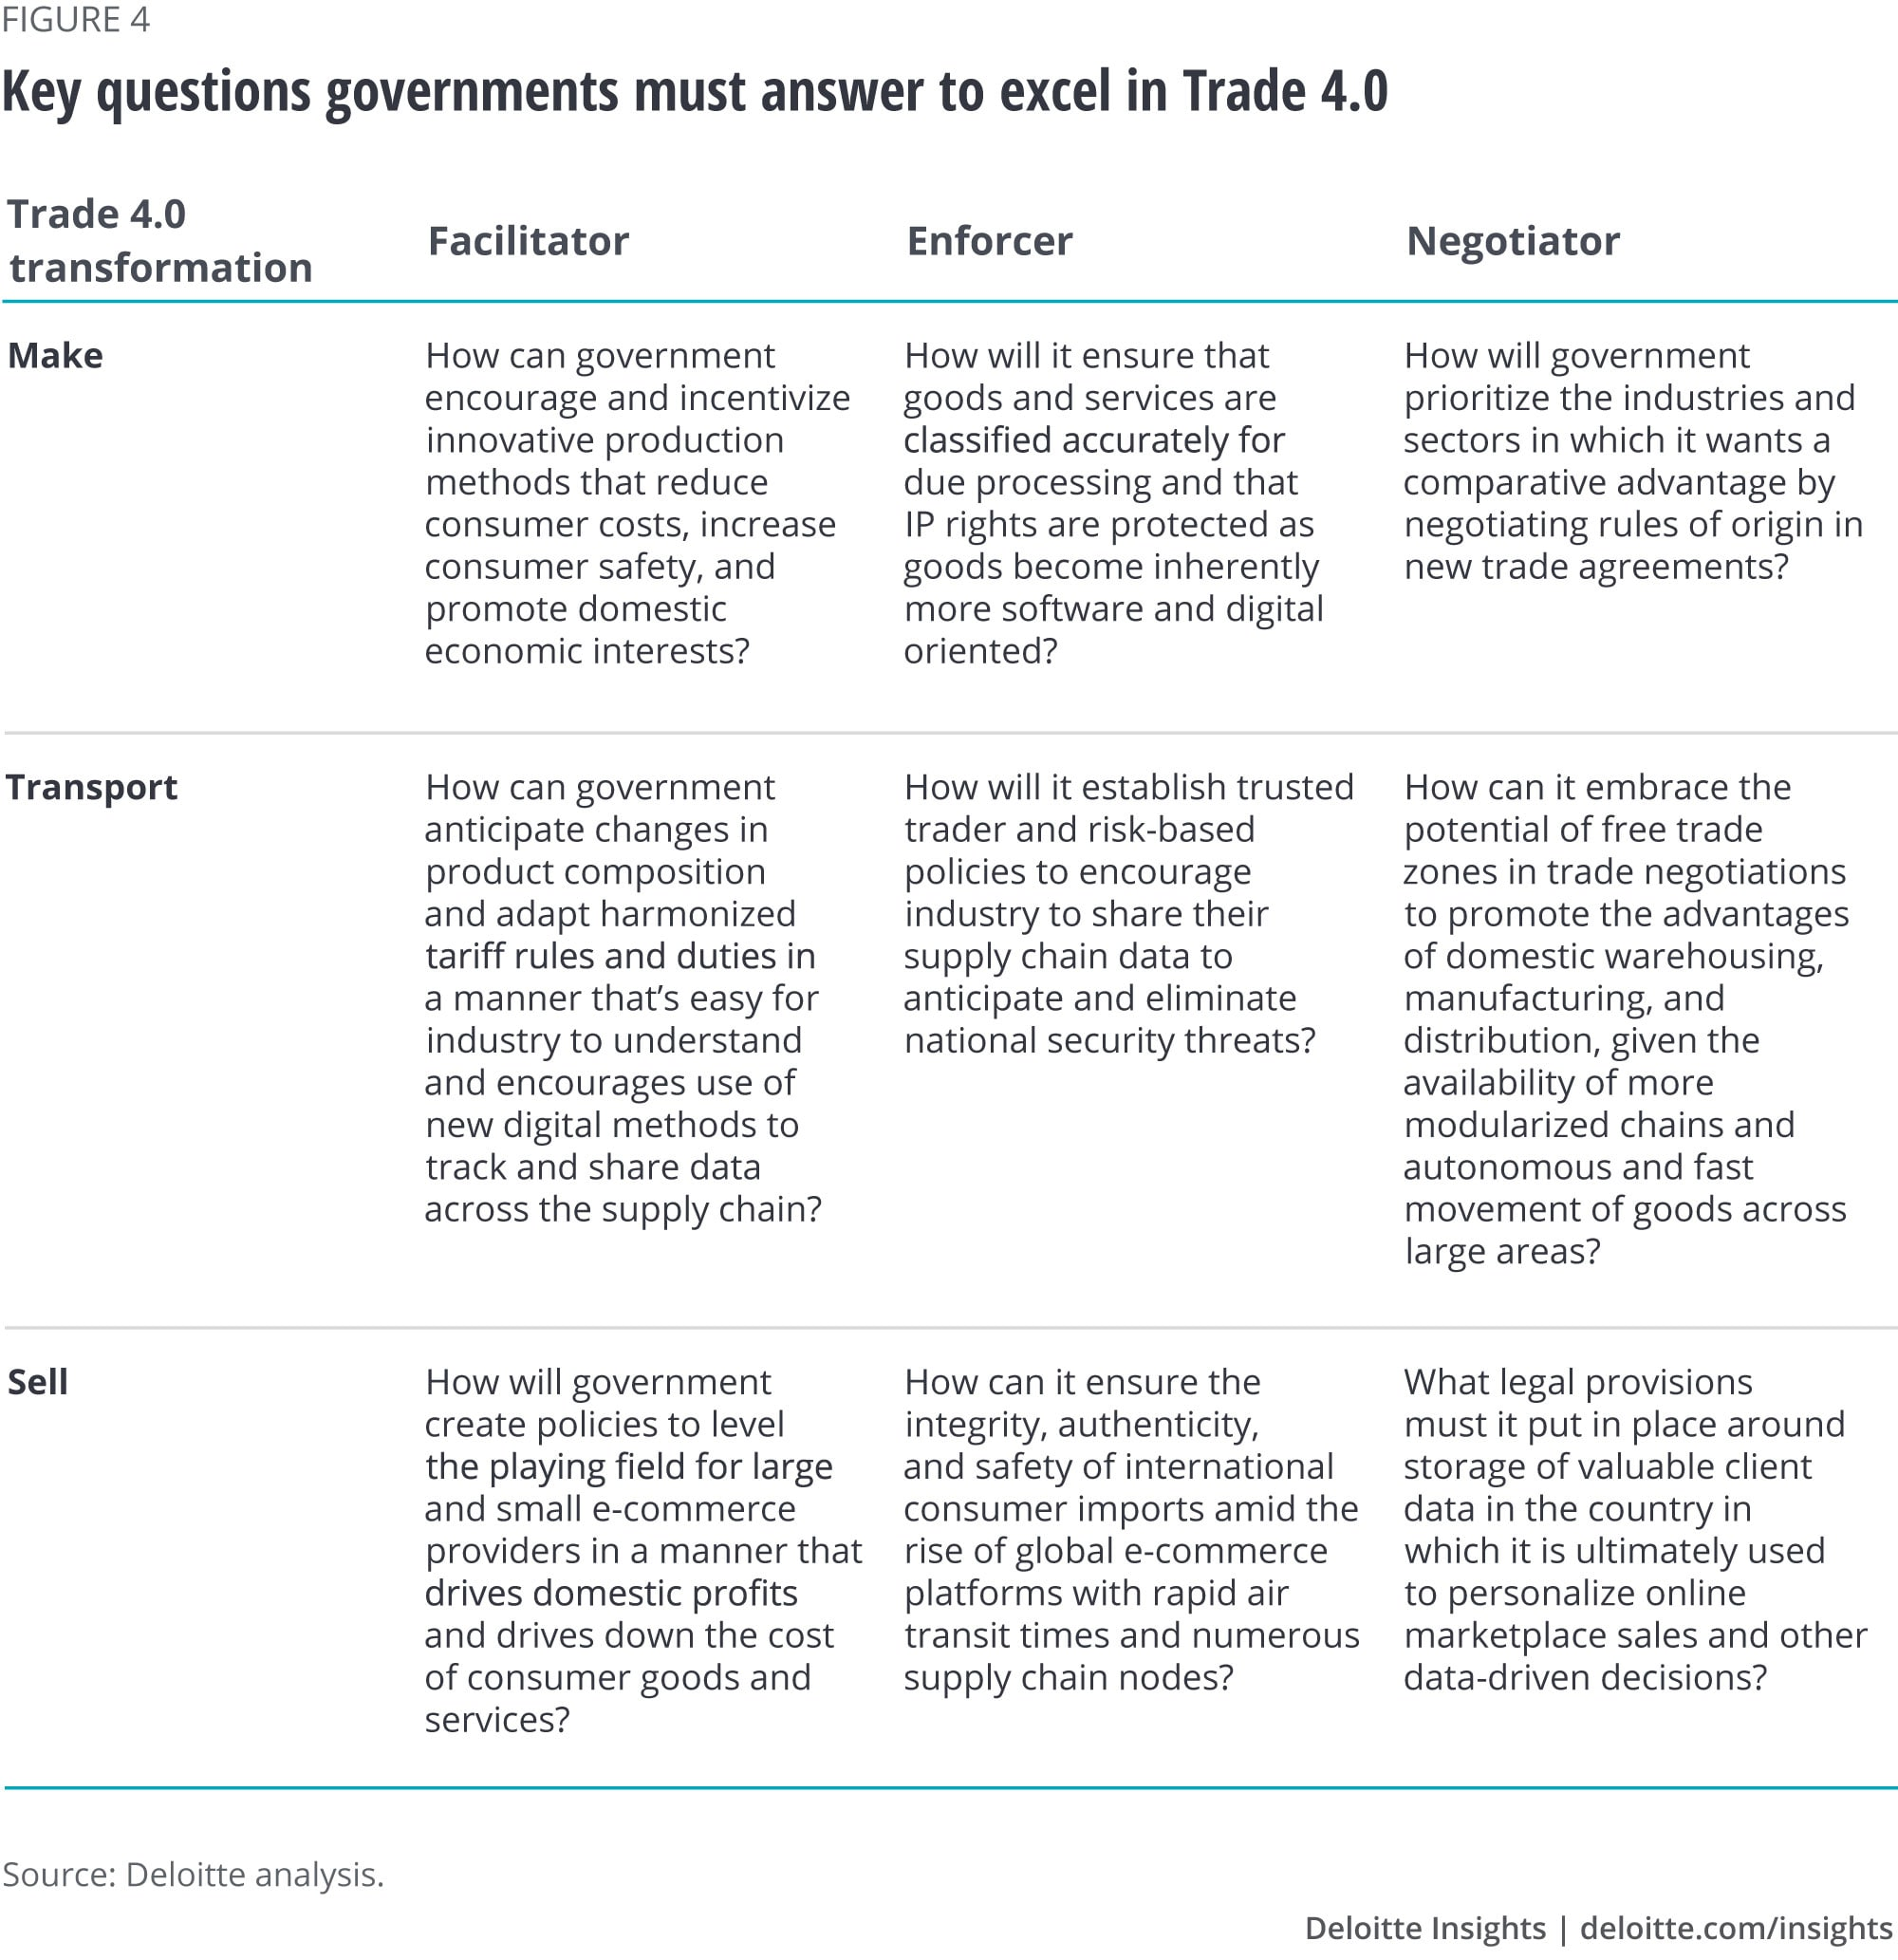 Key questions governments should answer to help excel in Trade 4.0